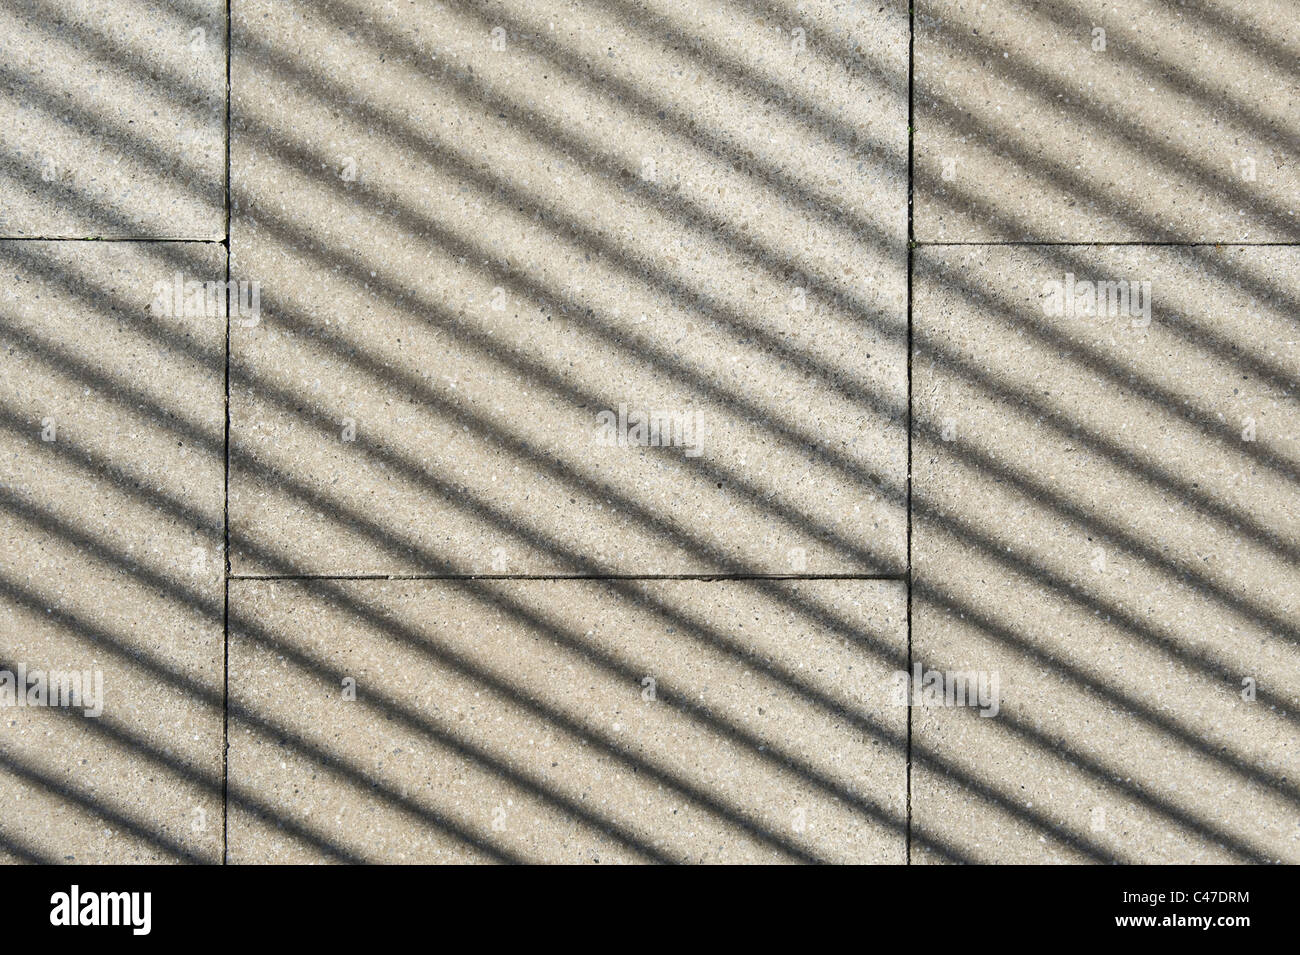 A metal fence casts a long shadow onto a flagstone pavement on a bright and sunny day. - Stock Image